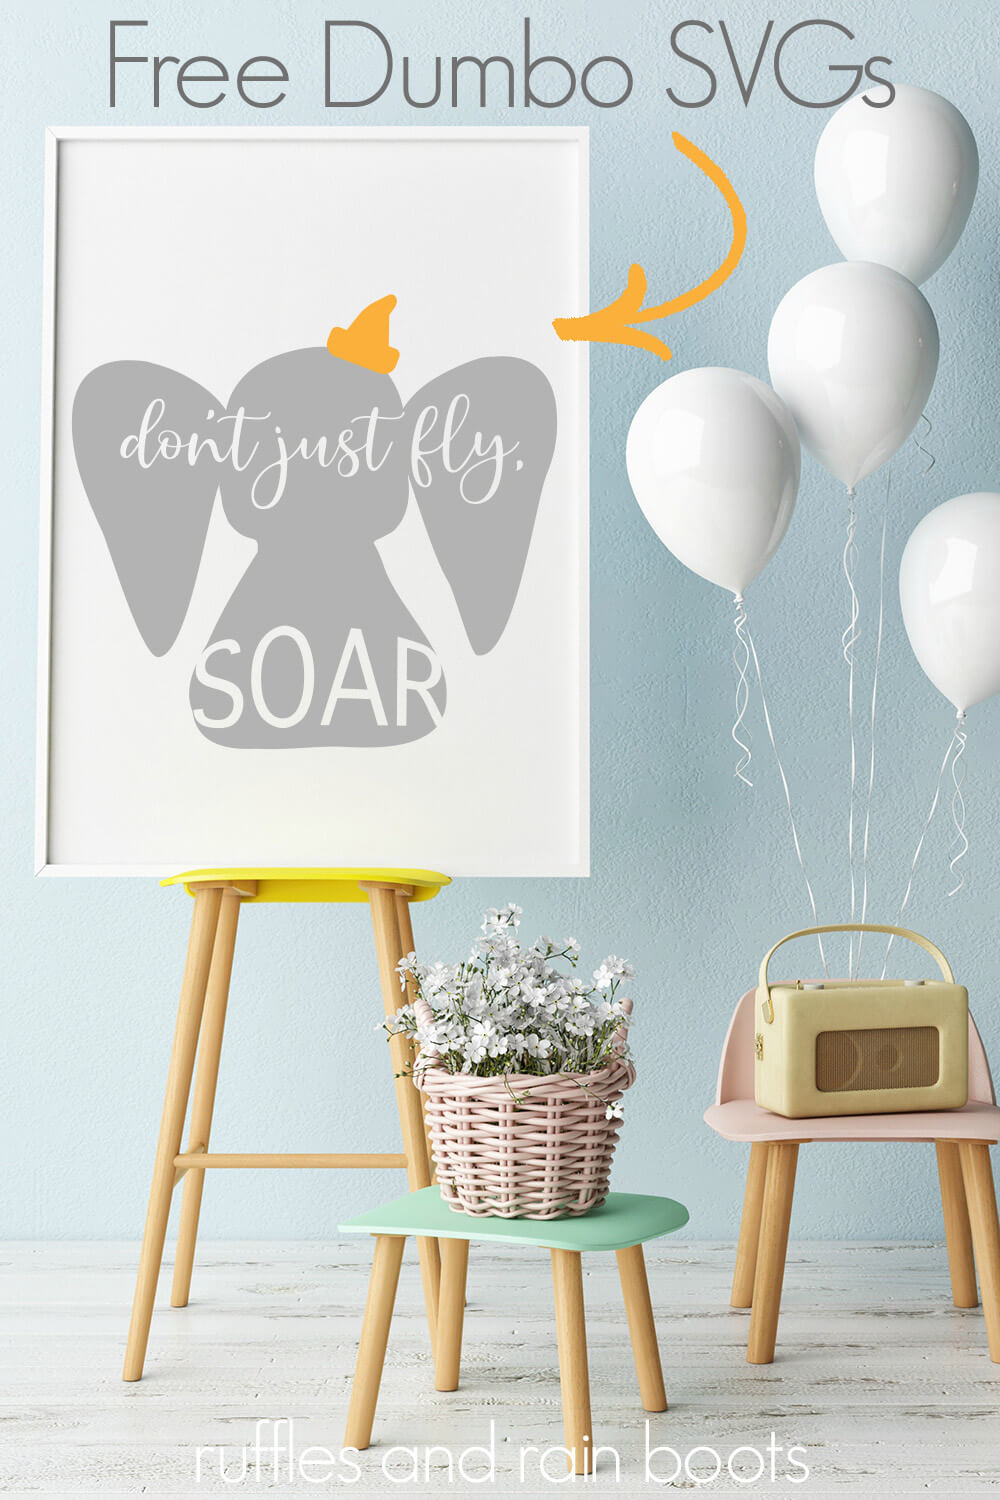 adorable Dumbo silhouette on frame next to white balloons in baby nursery with text which reads free DUMBO SVG